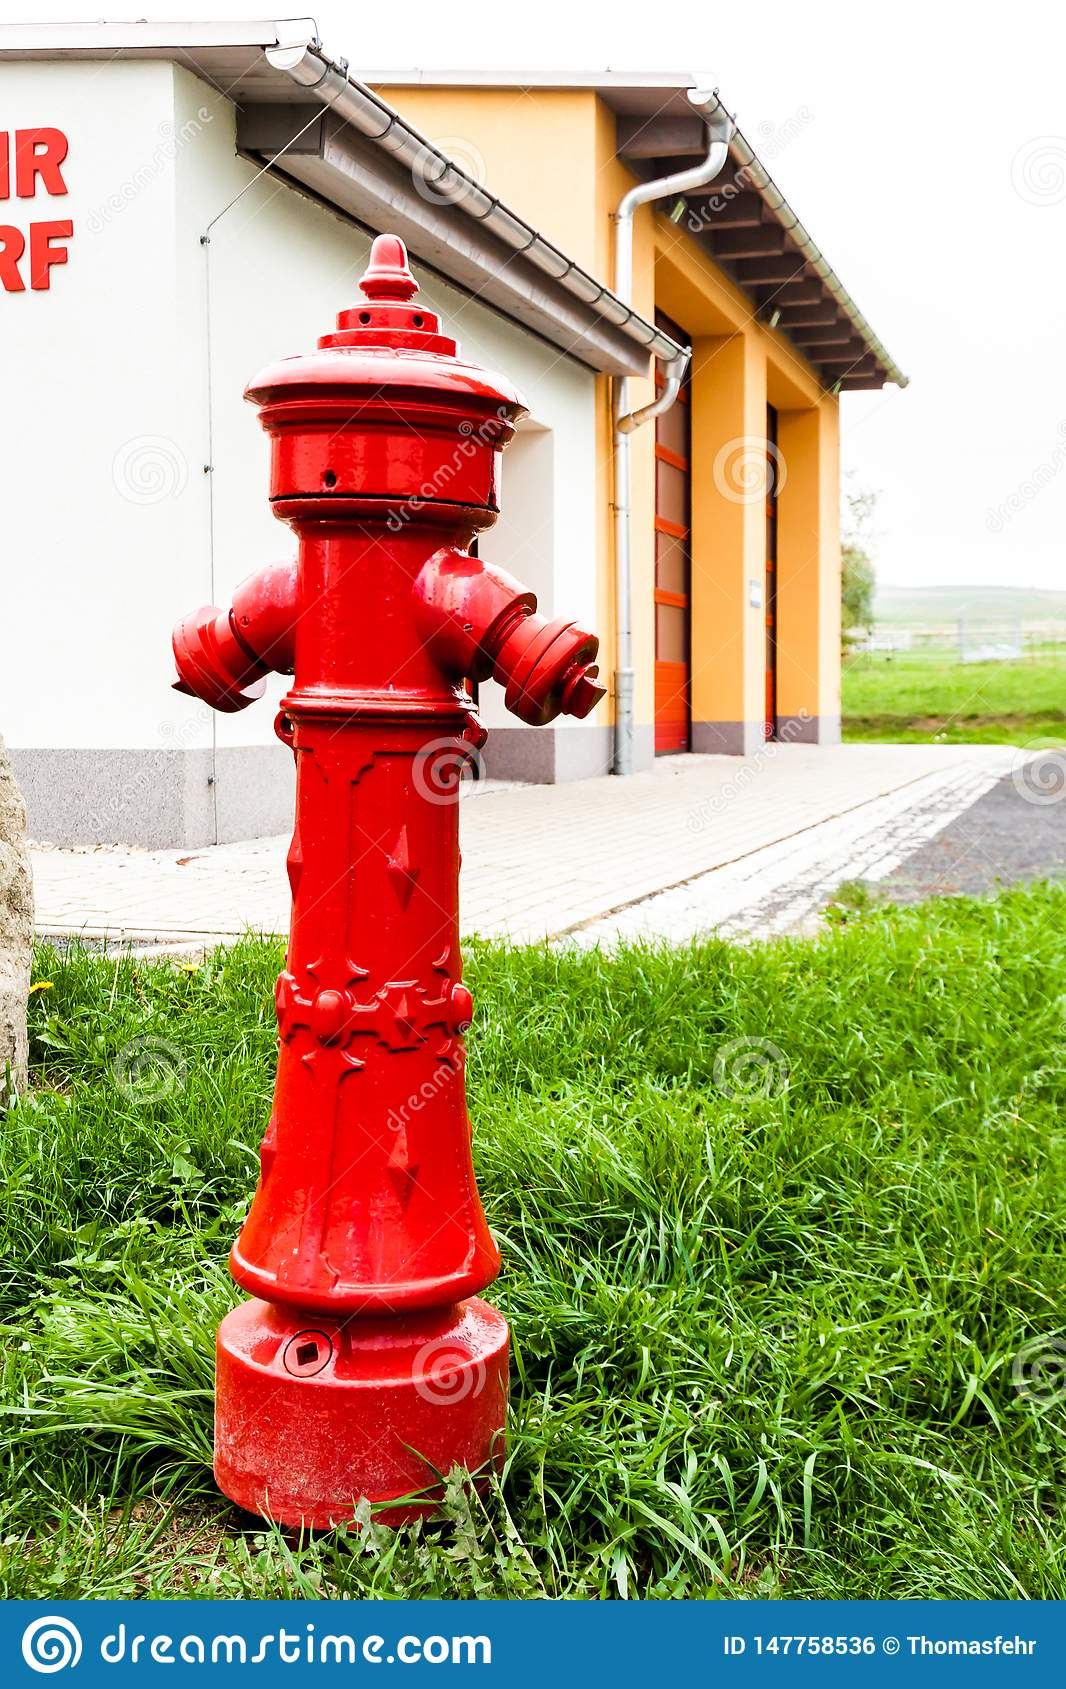 Hydrant in front of a fire station